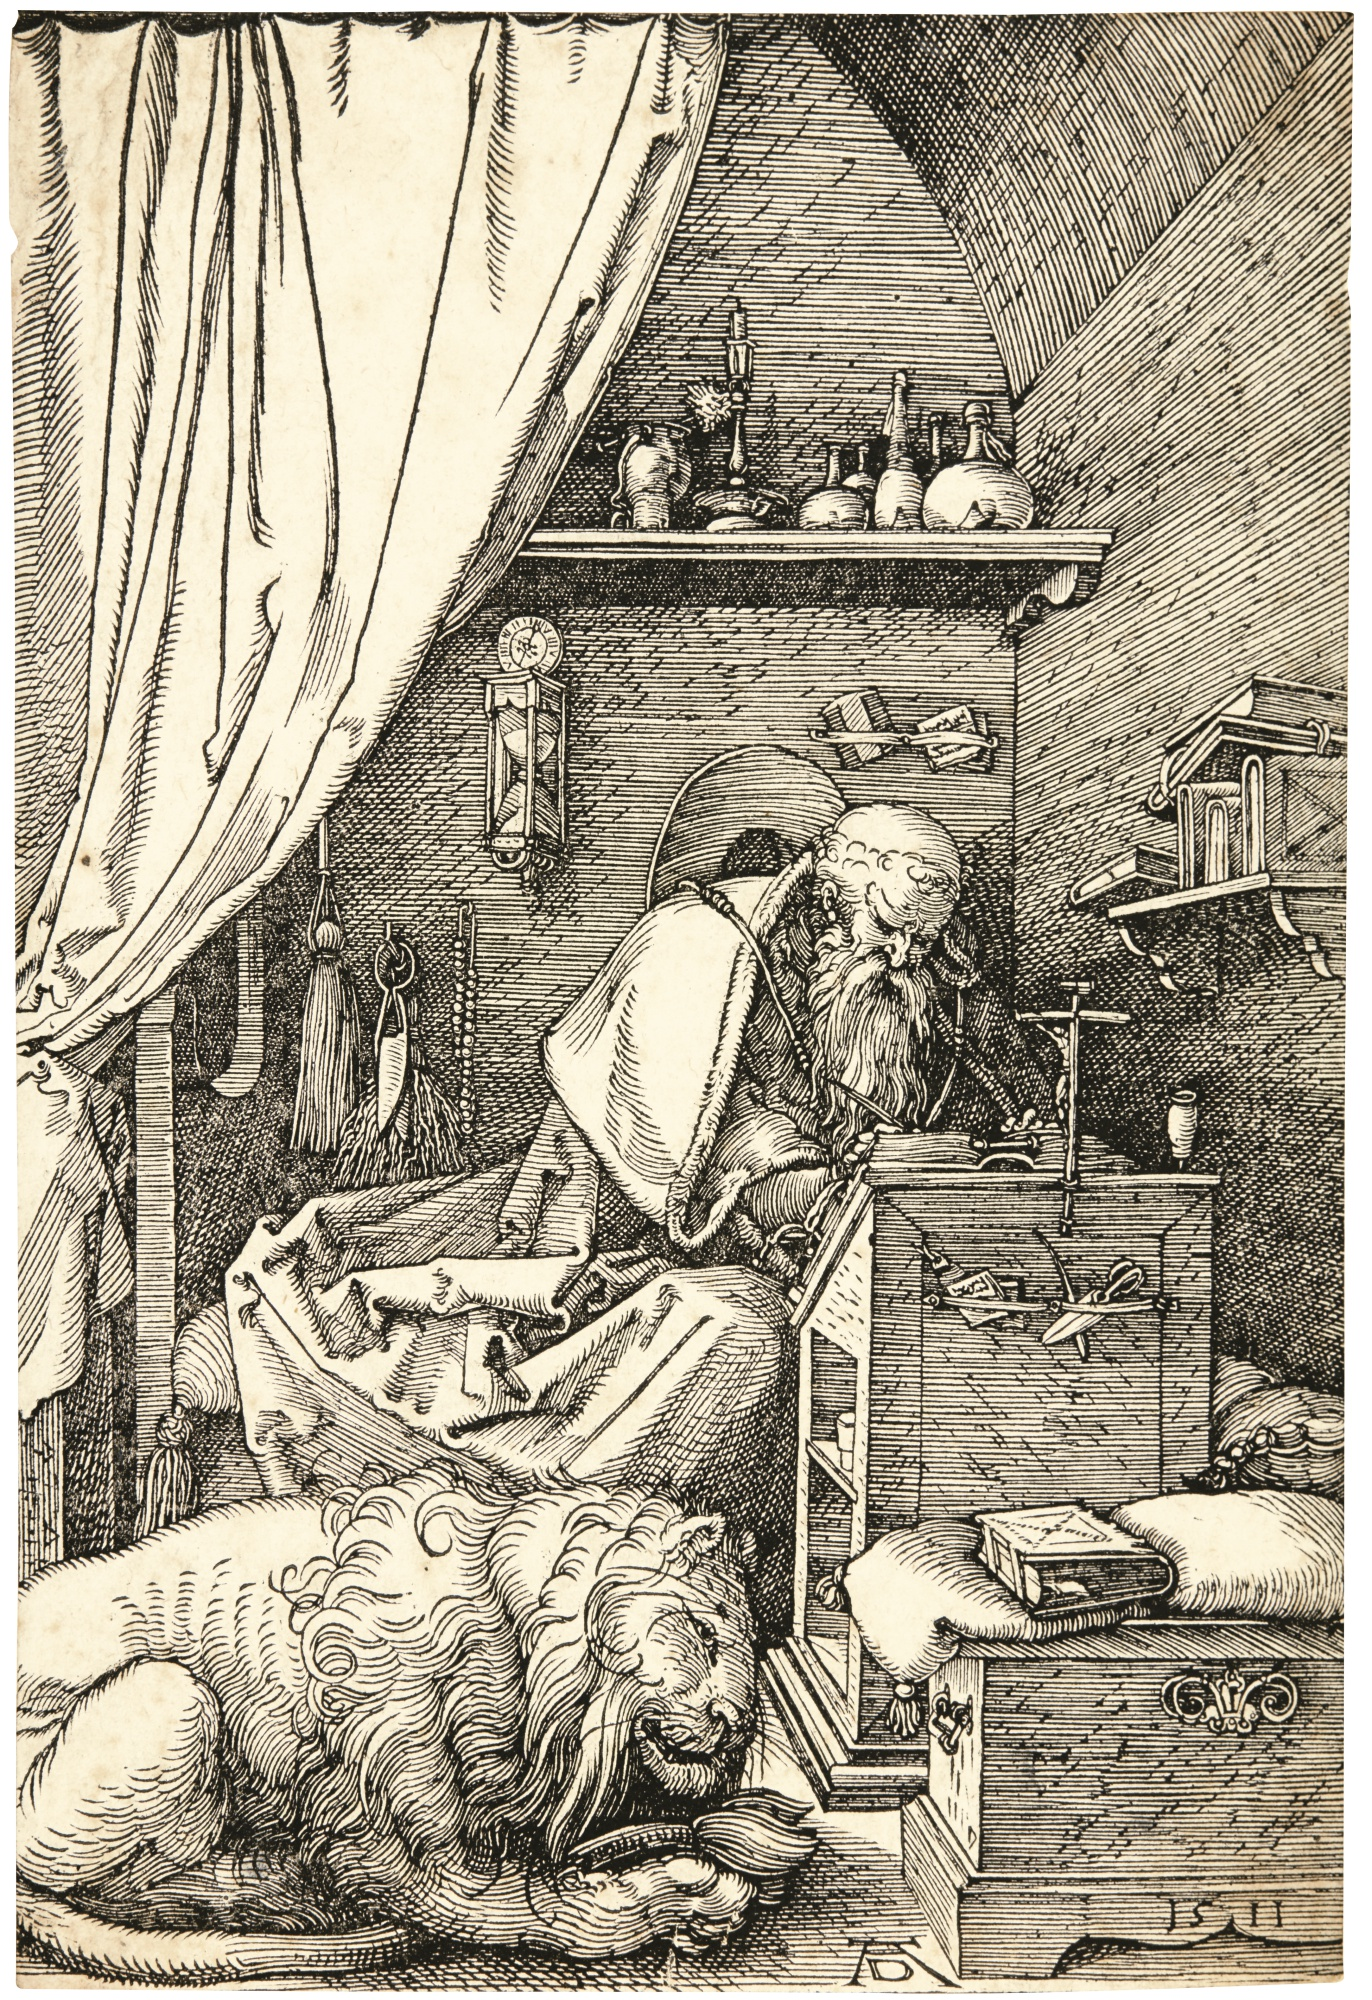 Albrecht Durer-Saint Jerome In His Cell (B. 114; M., Holl. 228)-1511